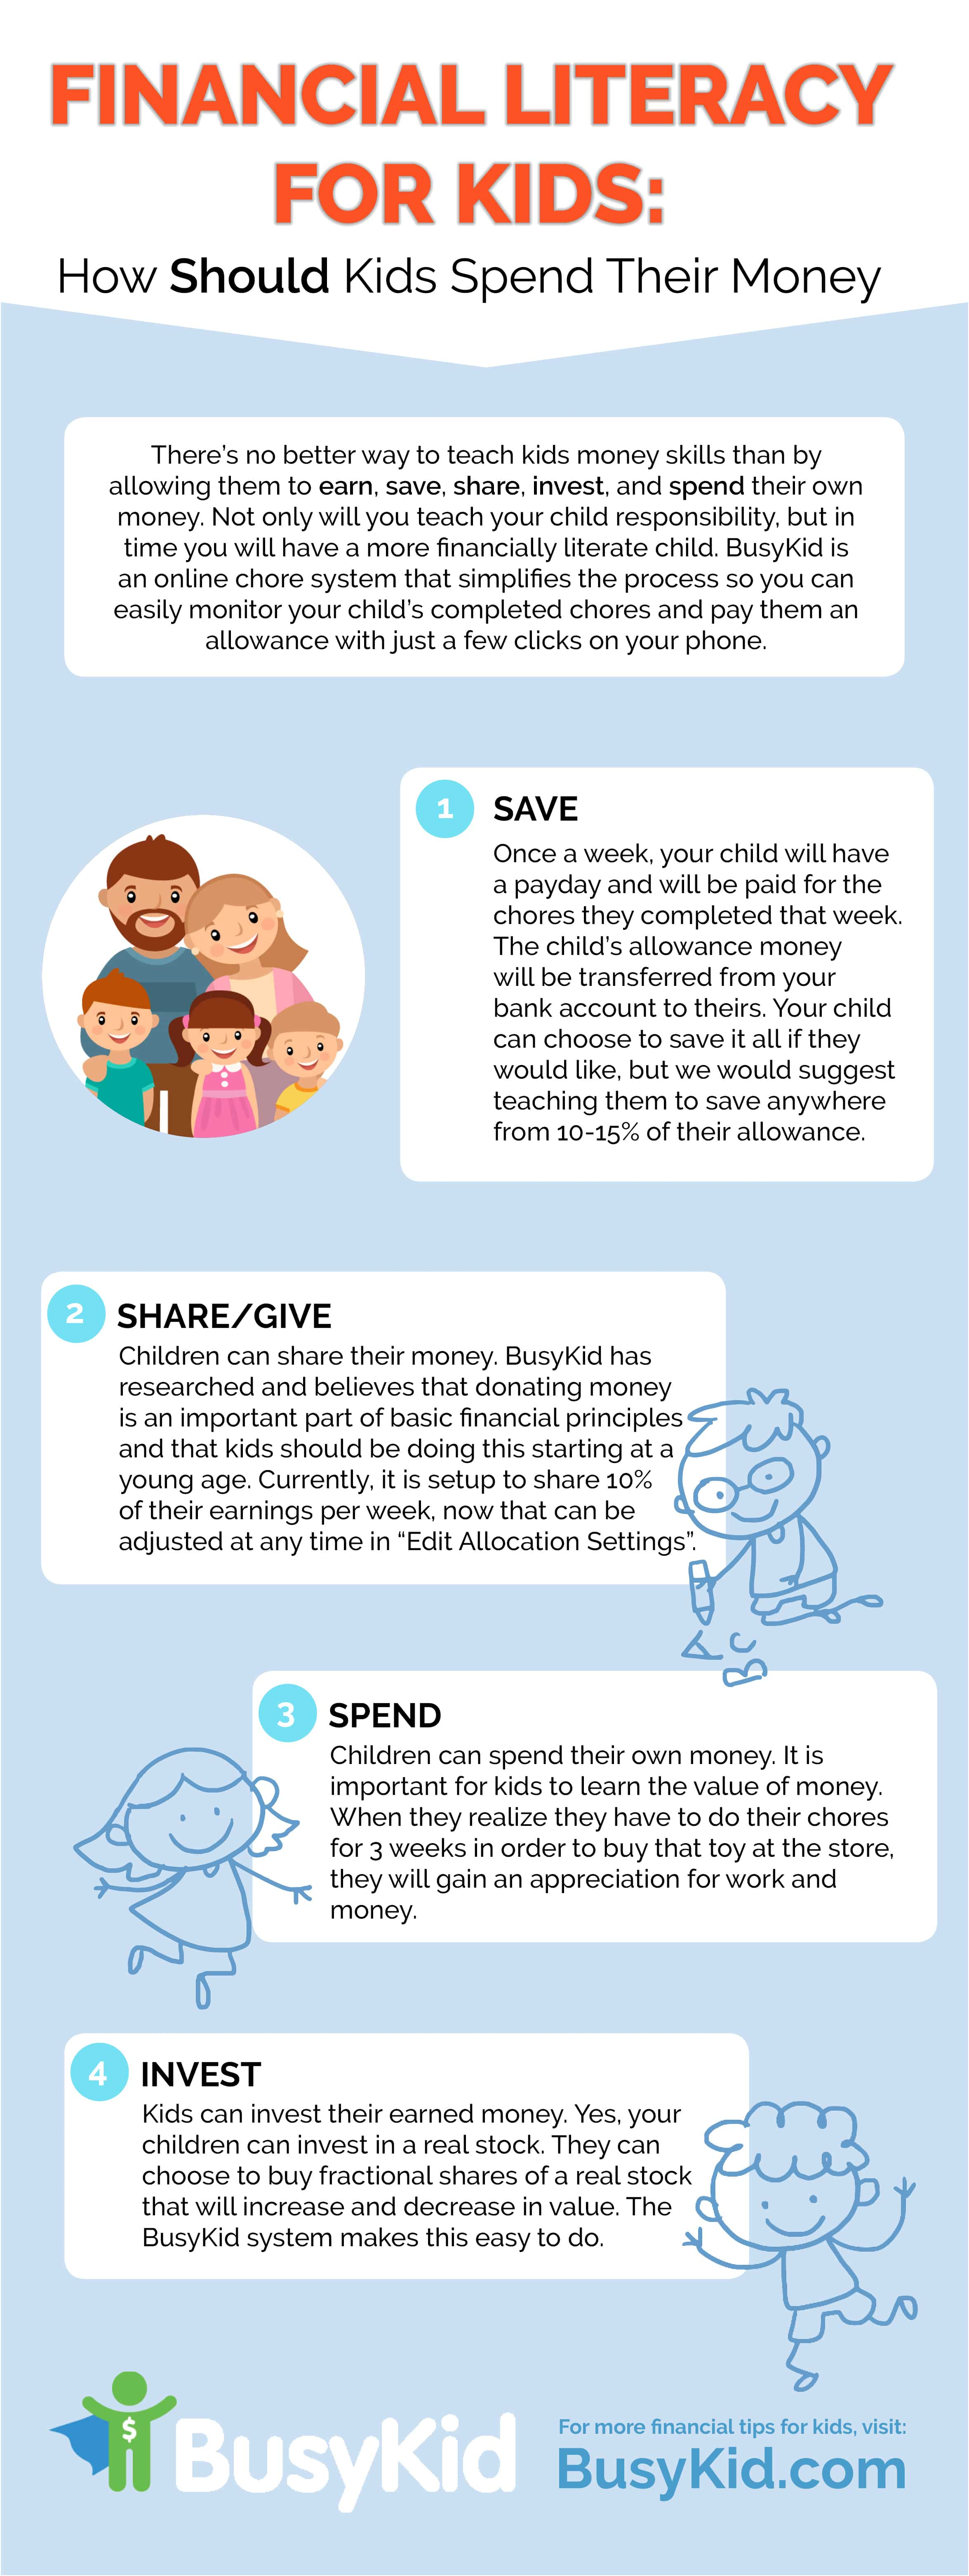 BusyKid Financial Literacy for Kids - Infographic